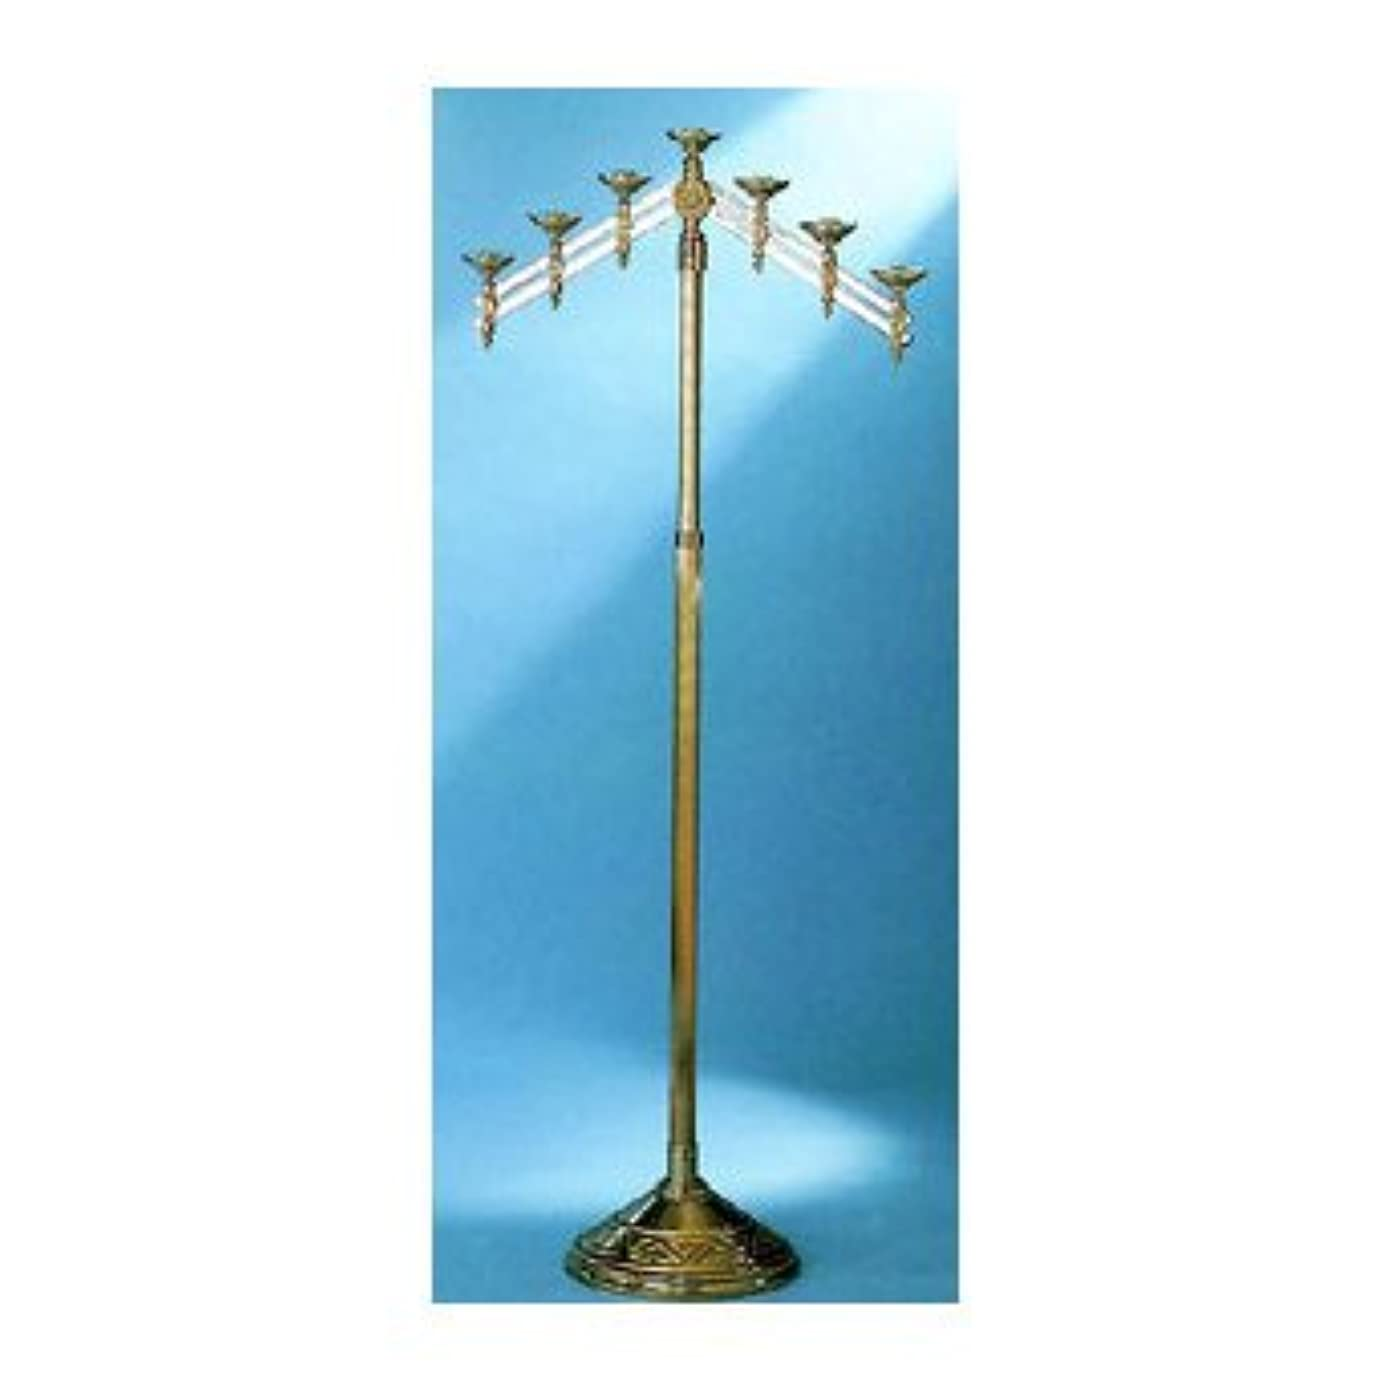 ペルソナ冷蔵庫補充教会床燭台with Adjustable Arms Metal Finish: 7-Lite, High Polish Bronze 24012-7-BZ